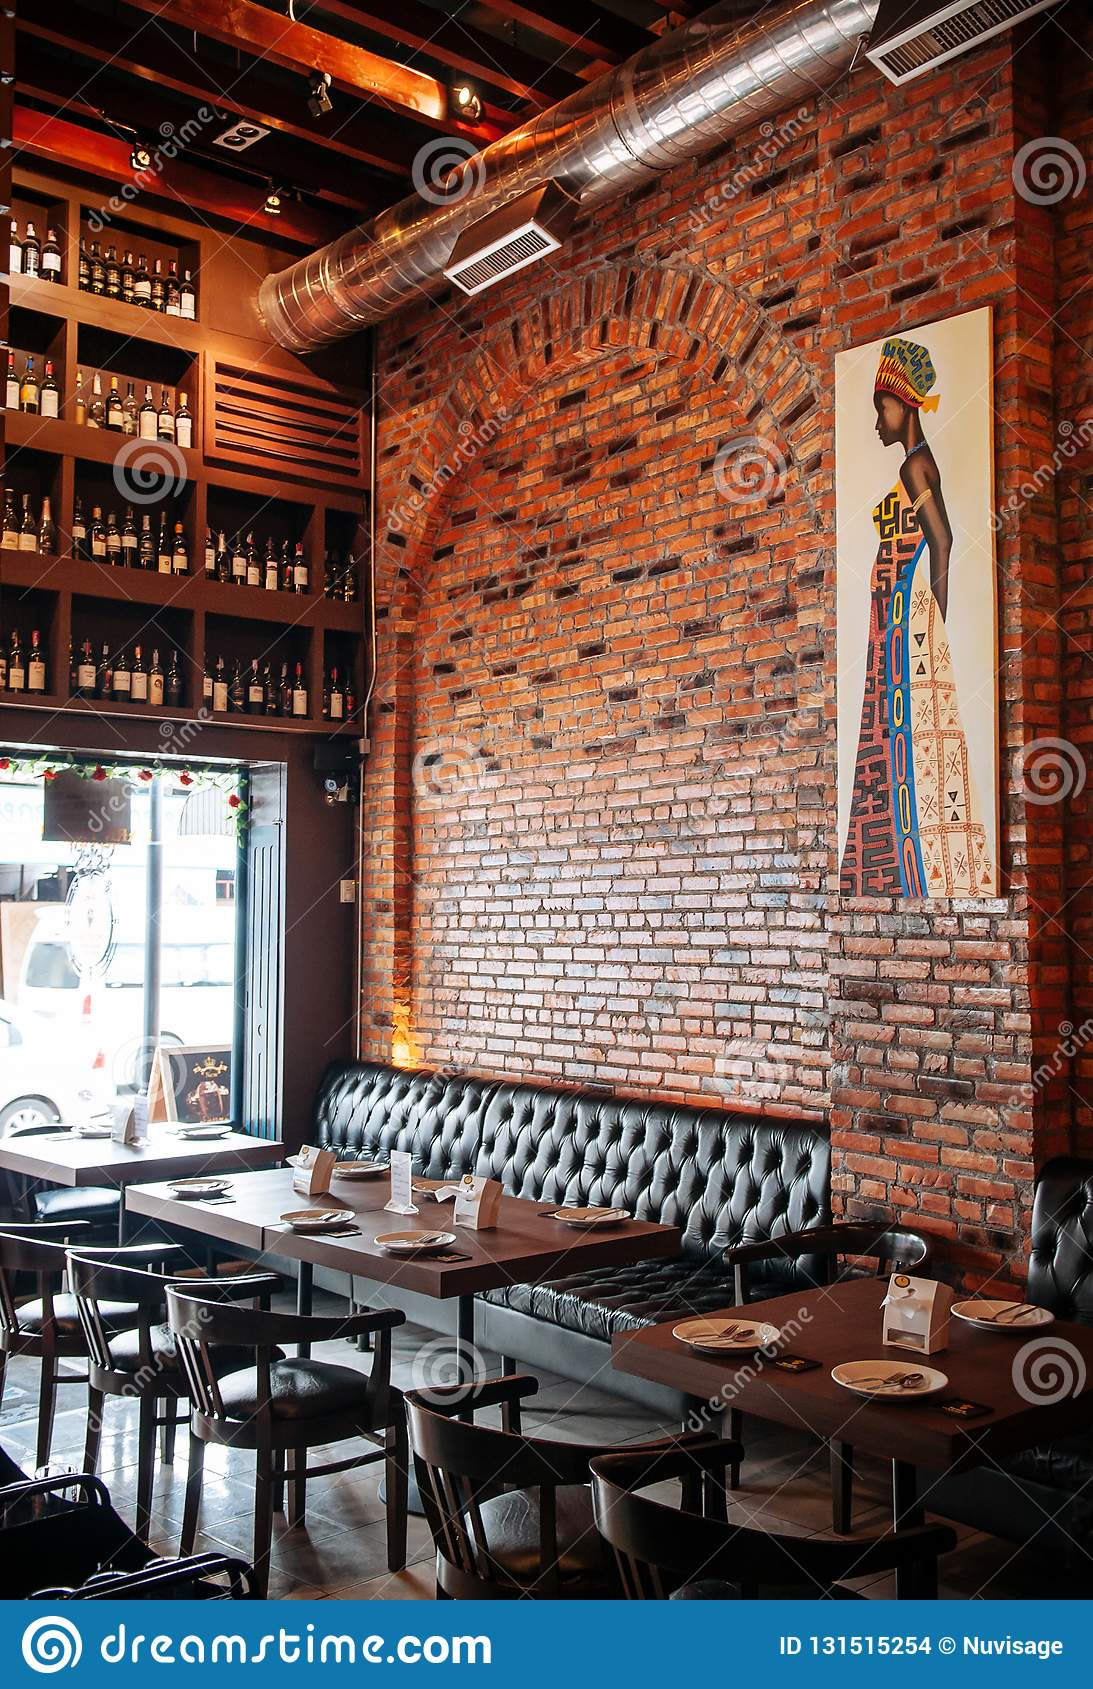 1 511 Industrial Restaurant Style Photos Free Royalty Free Stock Photos From Dreamstime